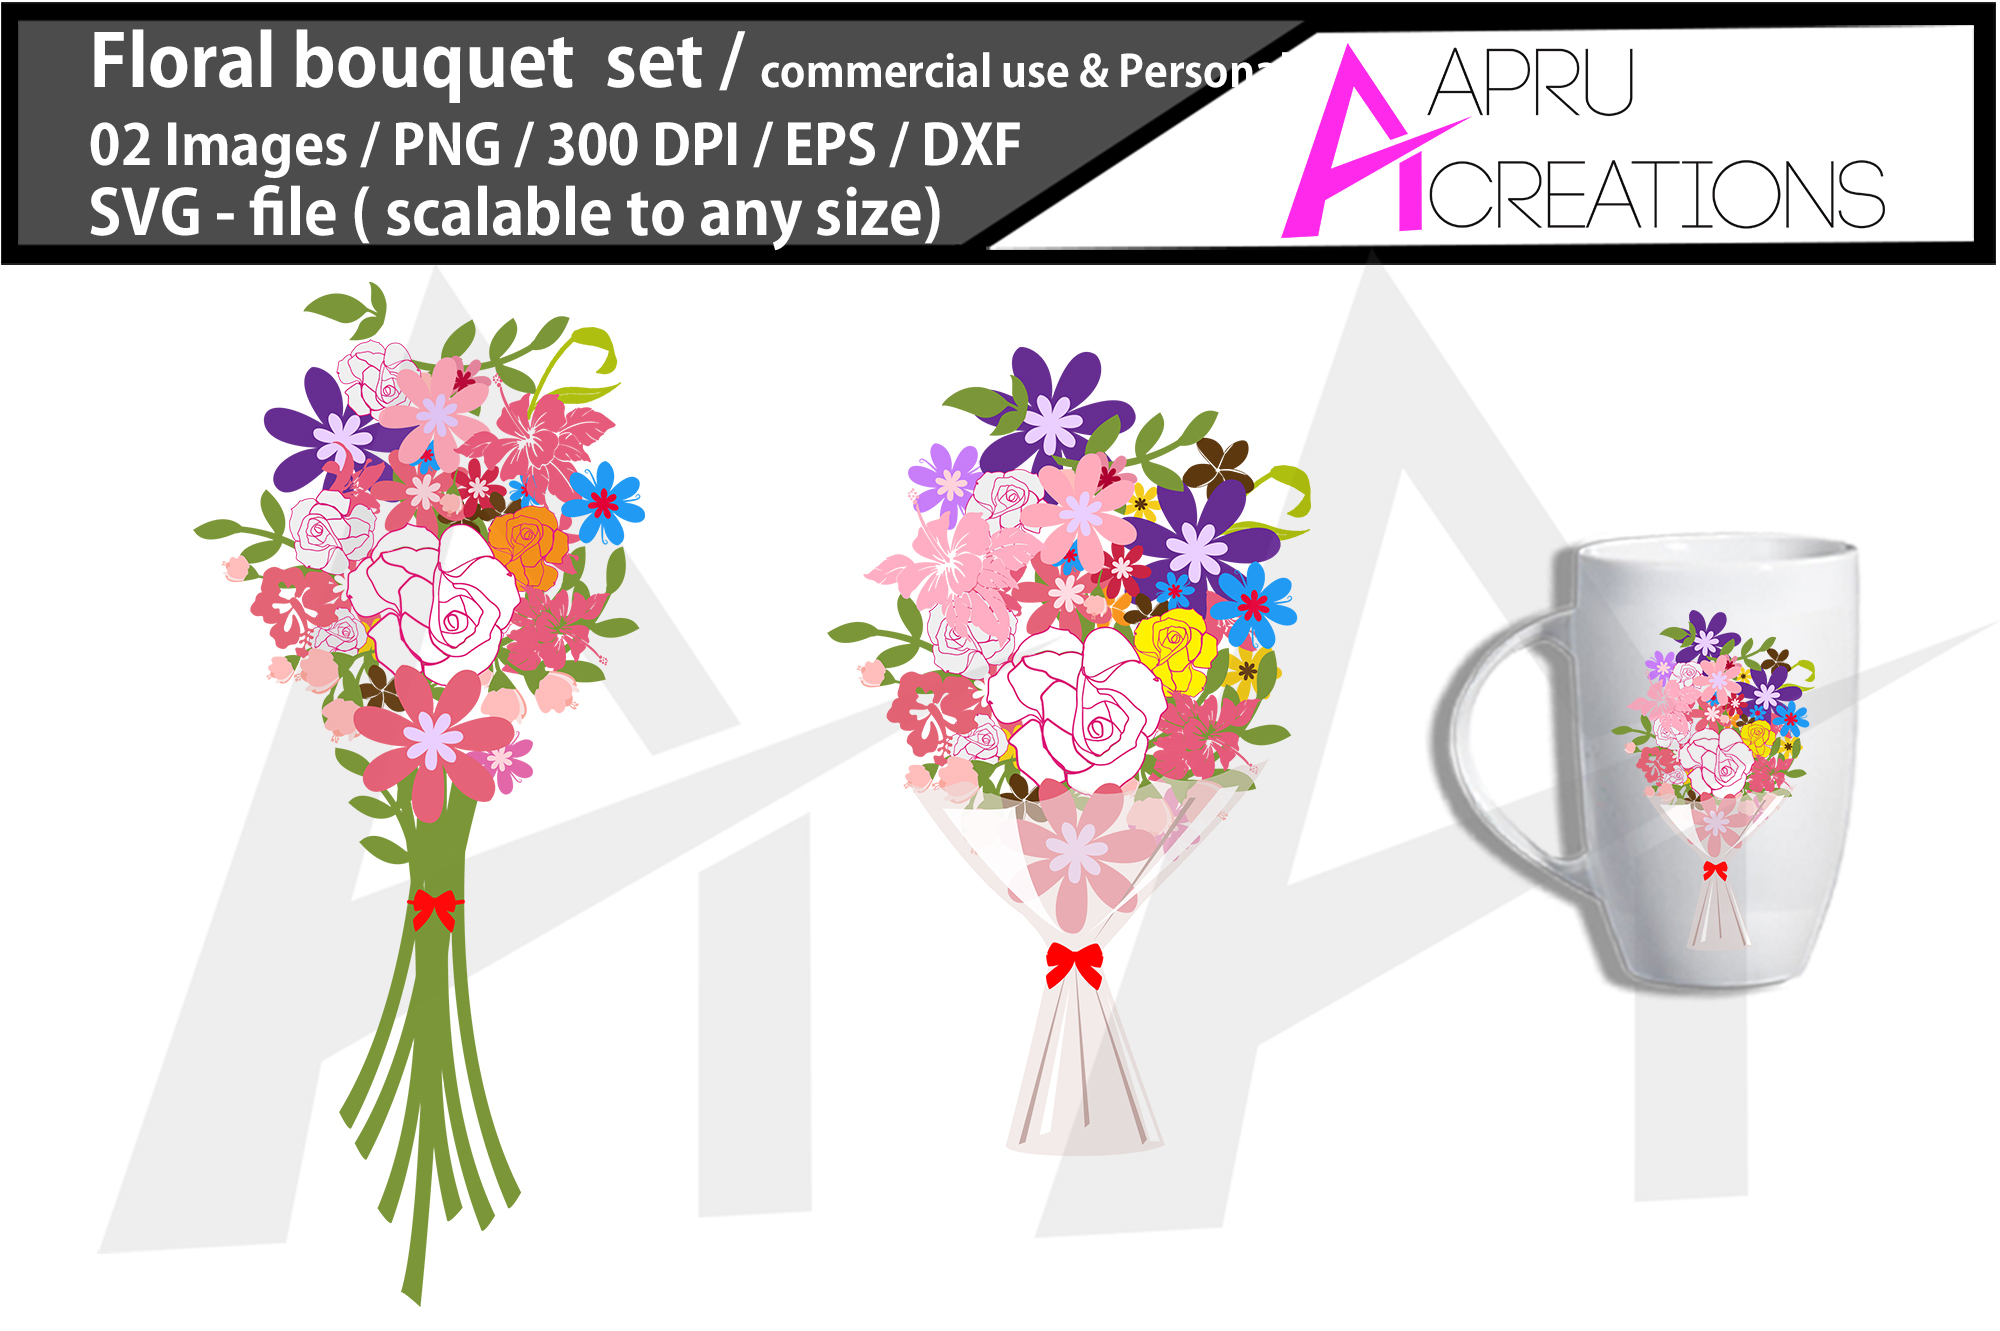 Download Free Floral Bouquet Cut File Floral Bou Graphic By Aparnastjp for Cricut Explore, Silhouette and other cutting machines.